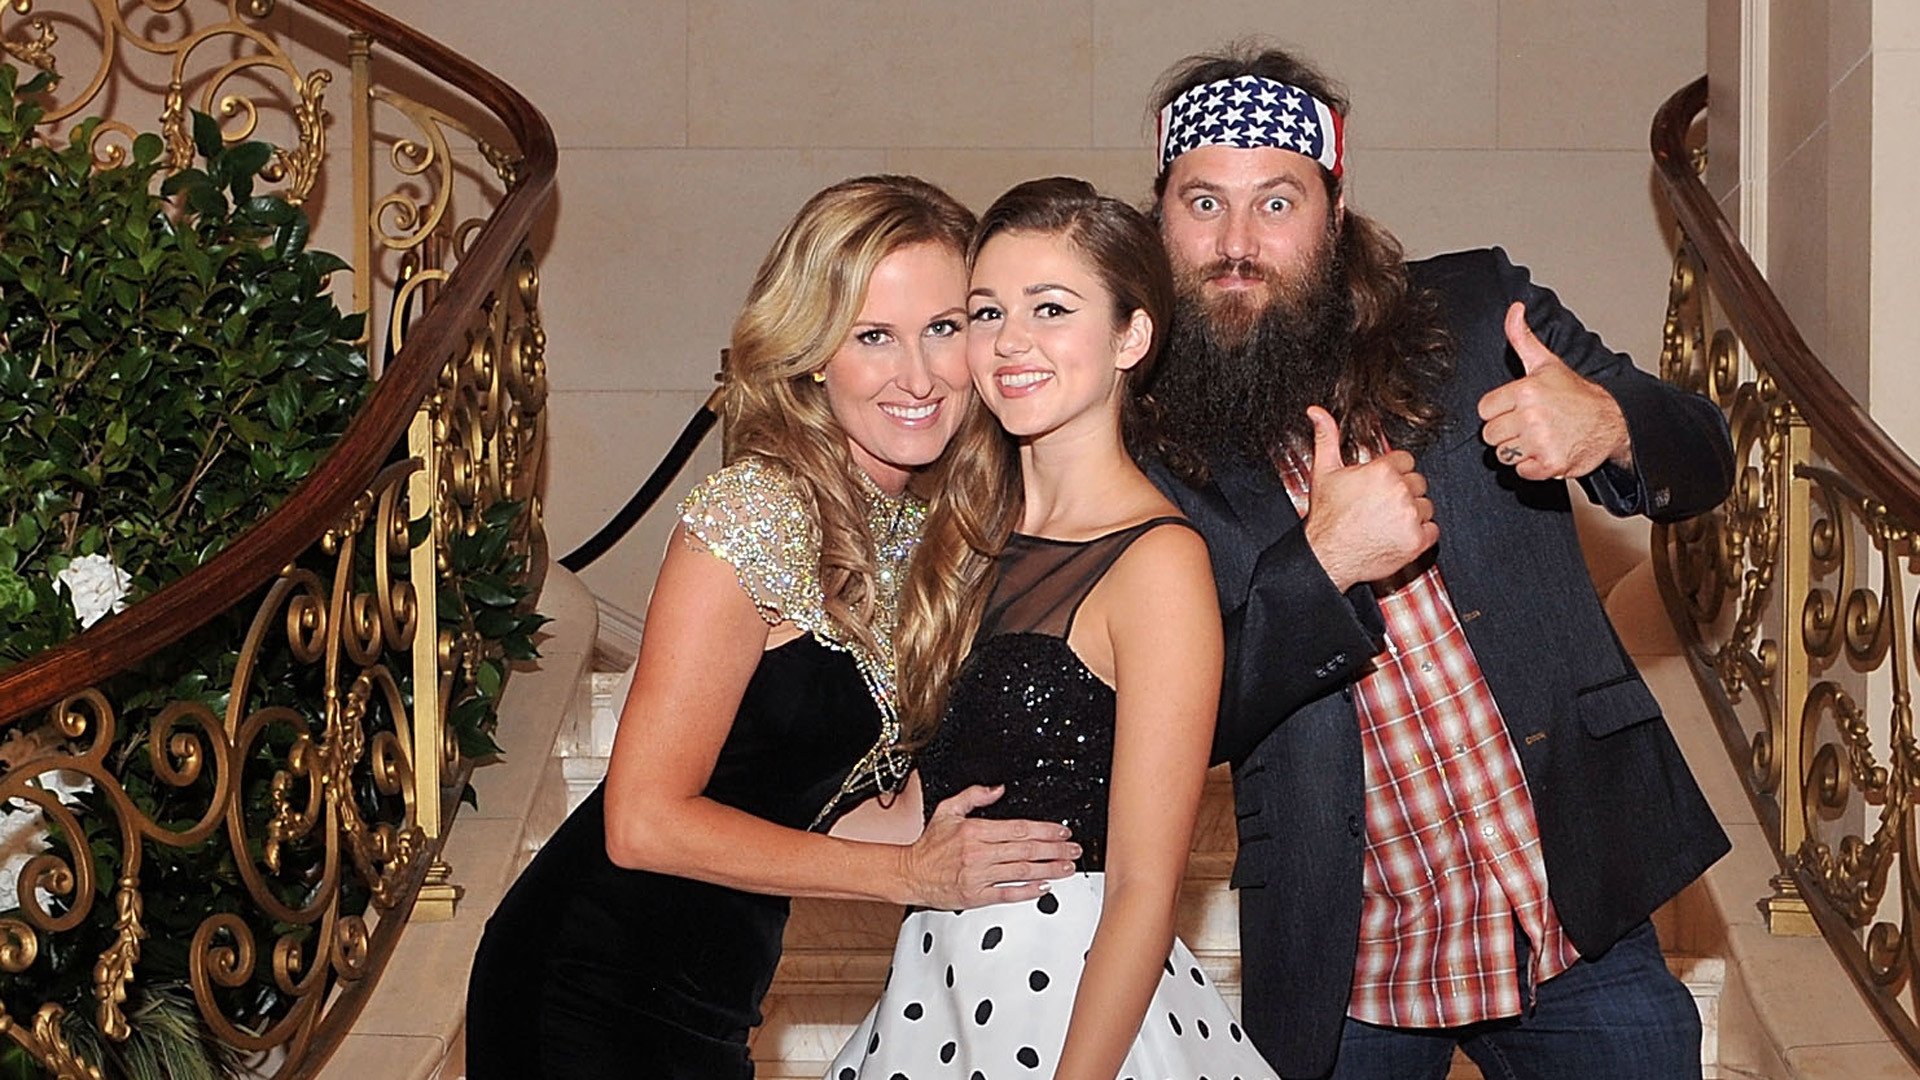 'Duck Dynasty' star: We started show 'to get the message of God out there'  – TODAY.com